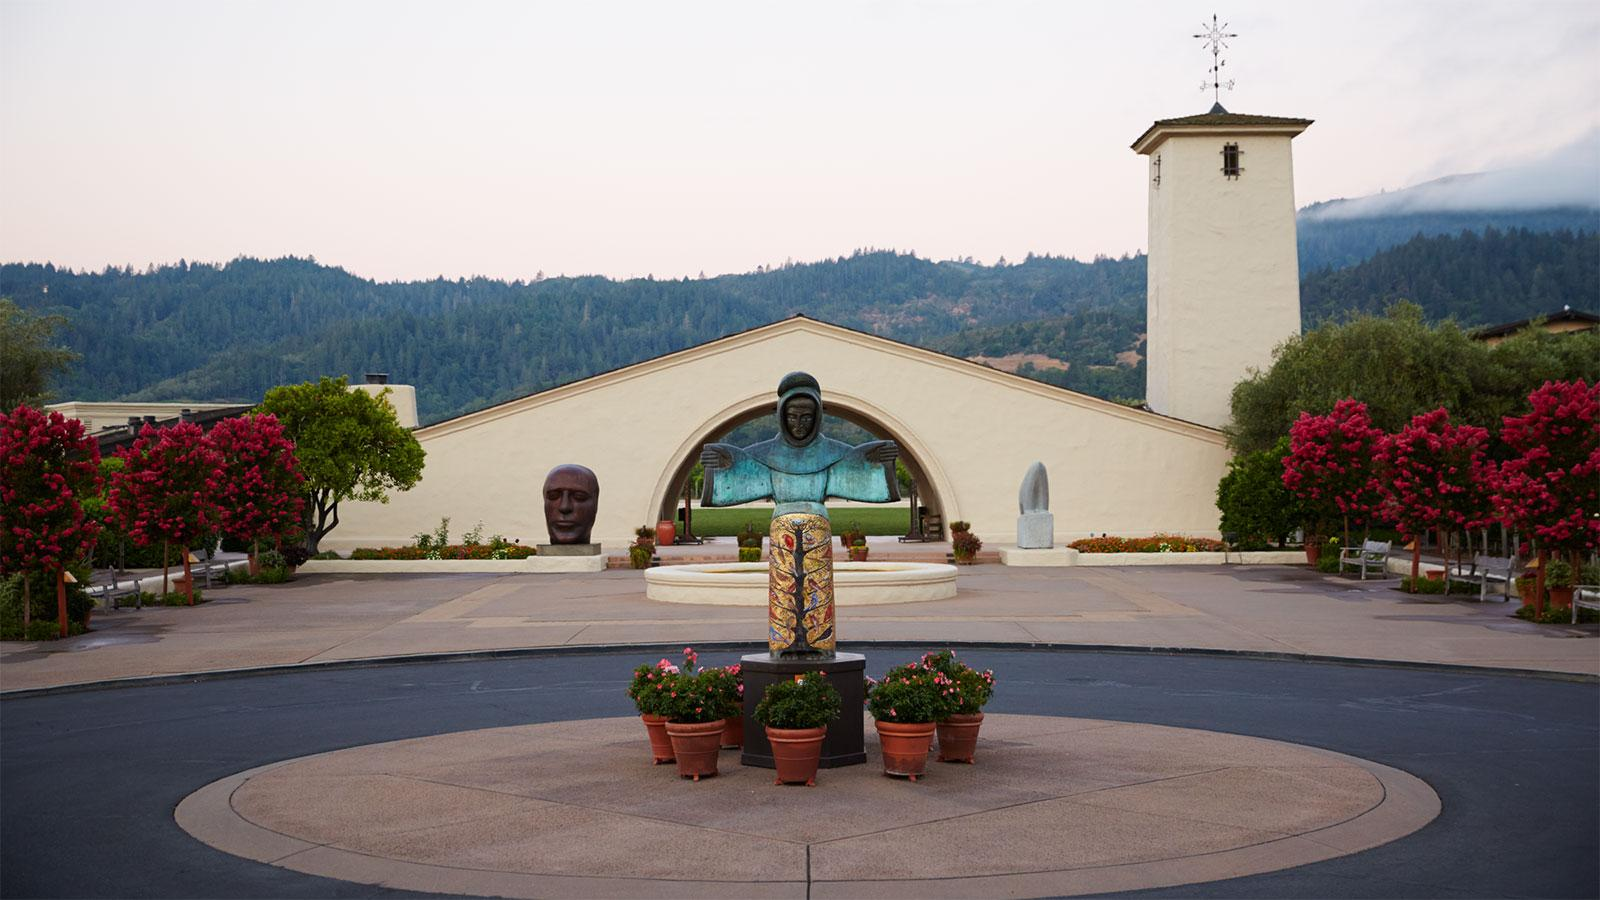 Founded in 1966, Robert Mondavi Winery stands tall in Napa Valley.